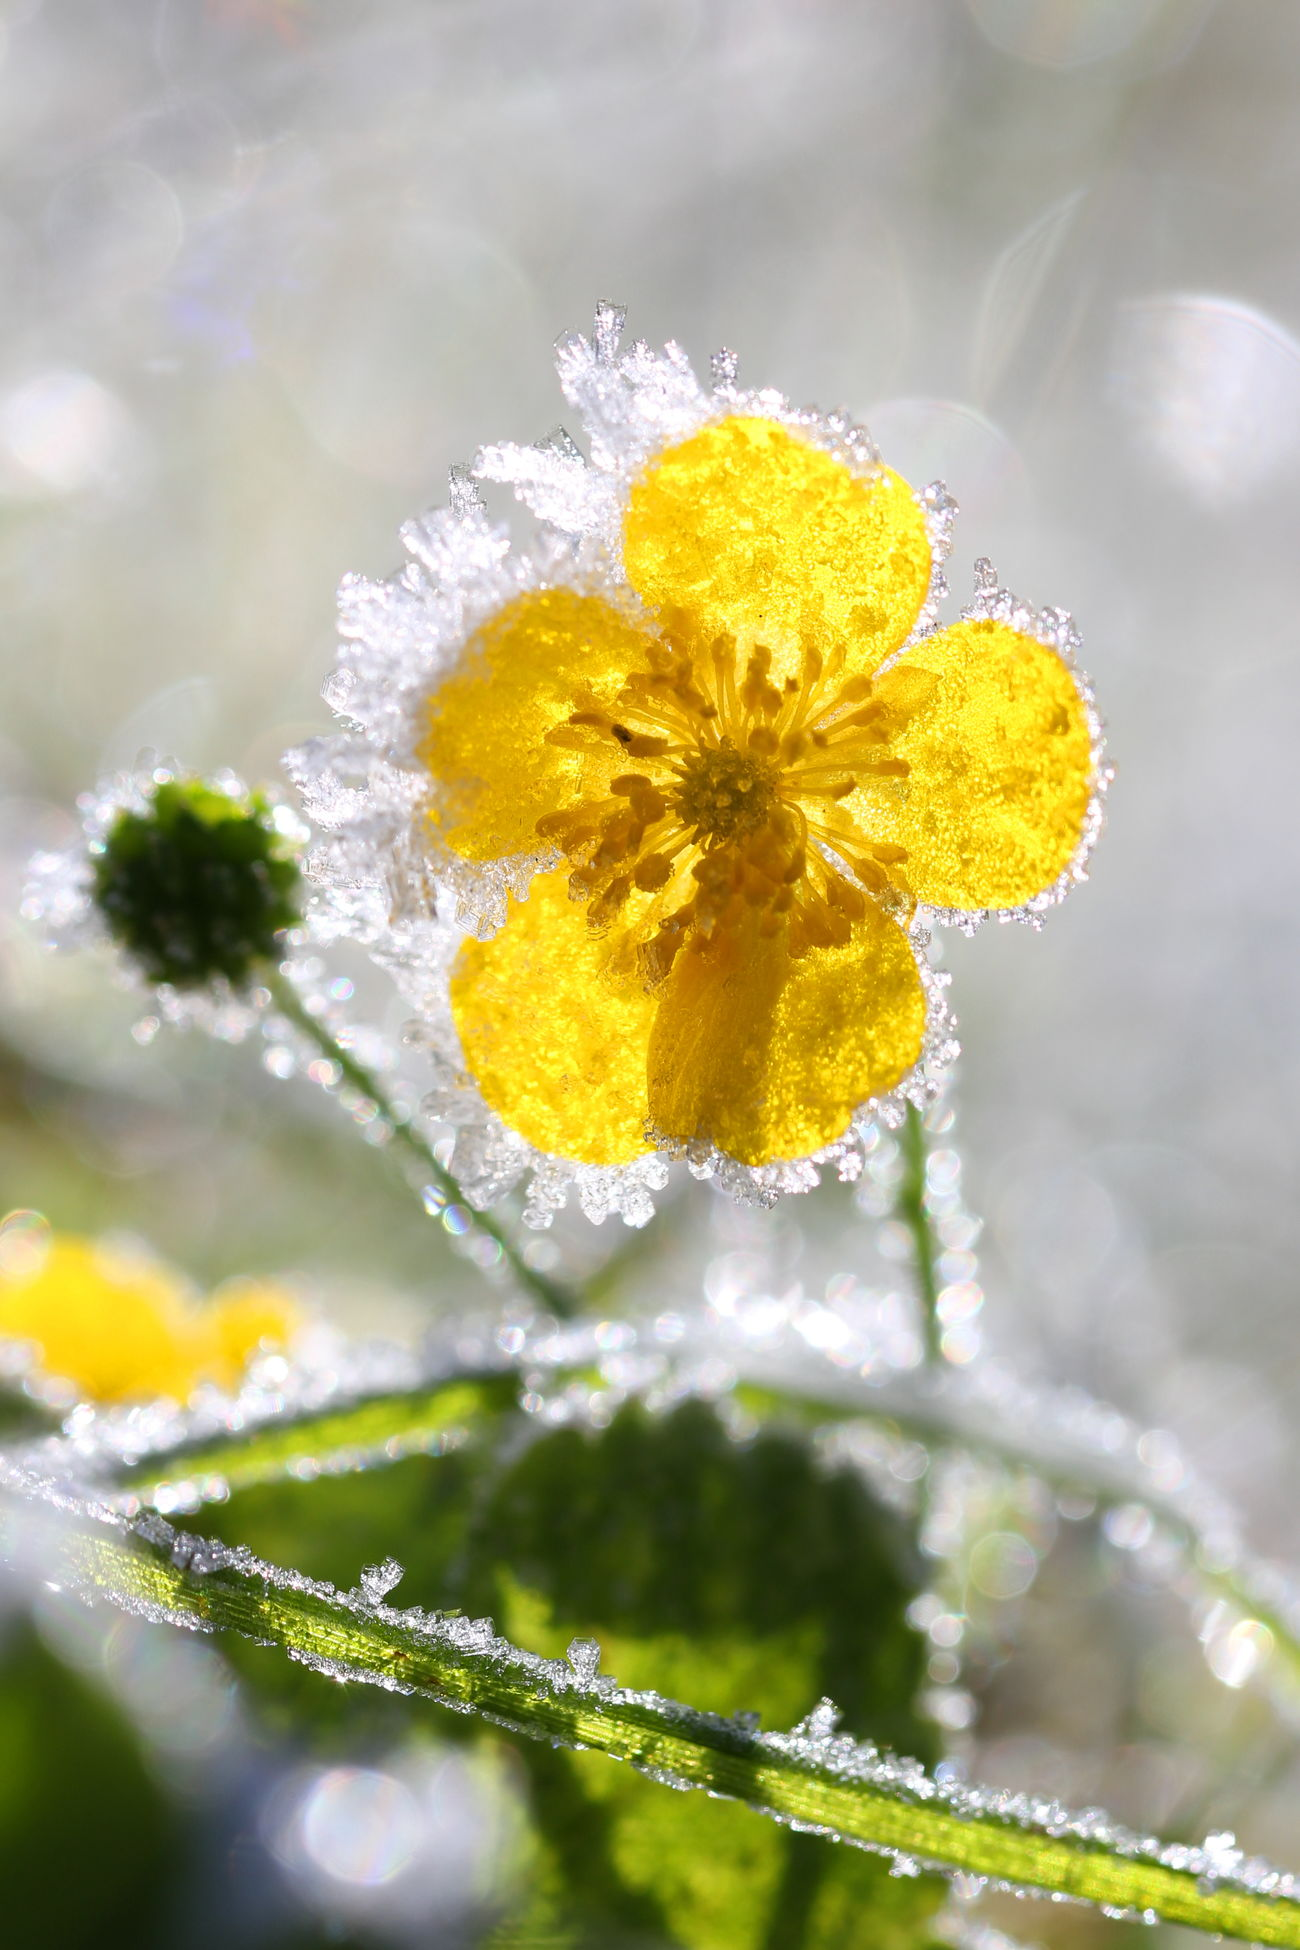 The nature defies the winter. Canon Eos60d Flower Frozen Drop Green Plant Ice Ice Cristal Ice Flowers Winter Wonderland Yellow Flower First Eyeem Photo